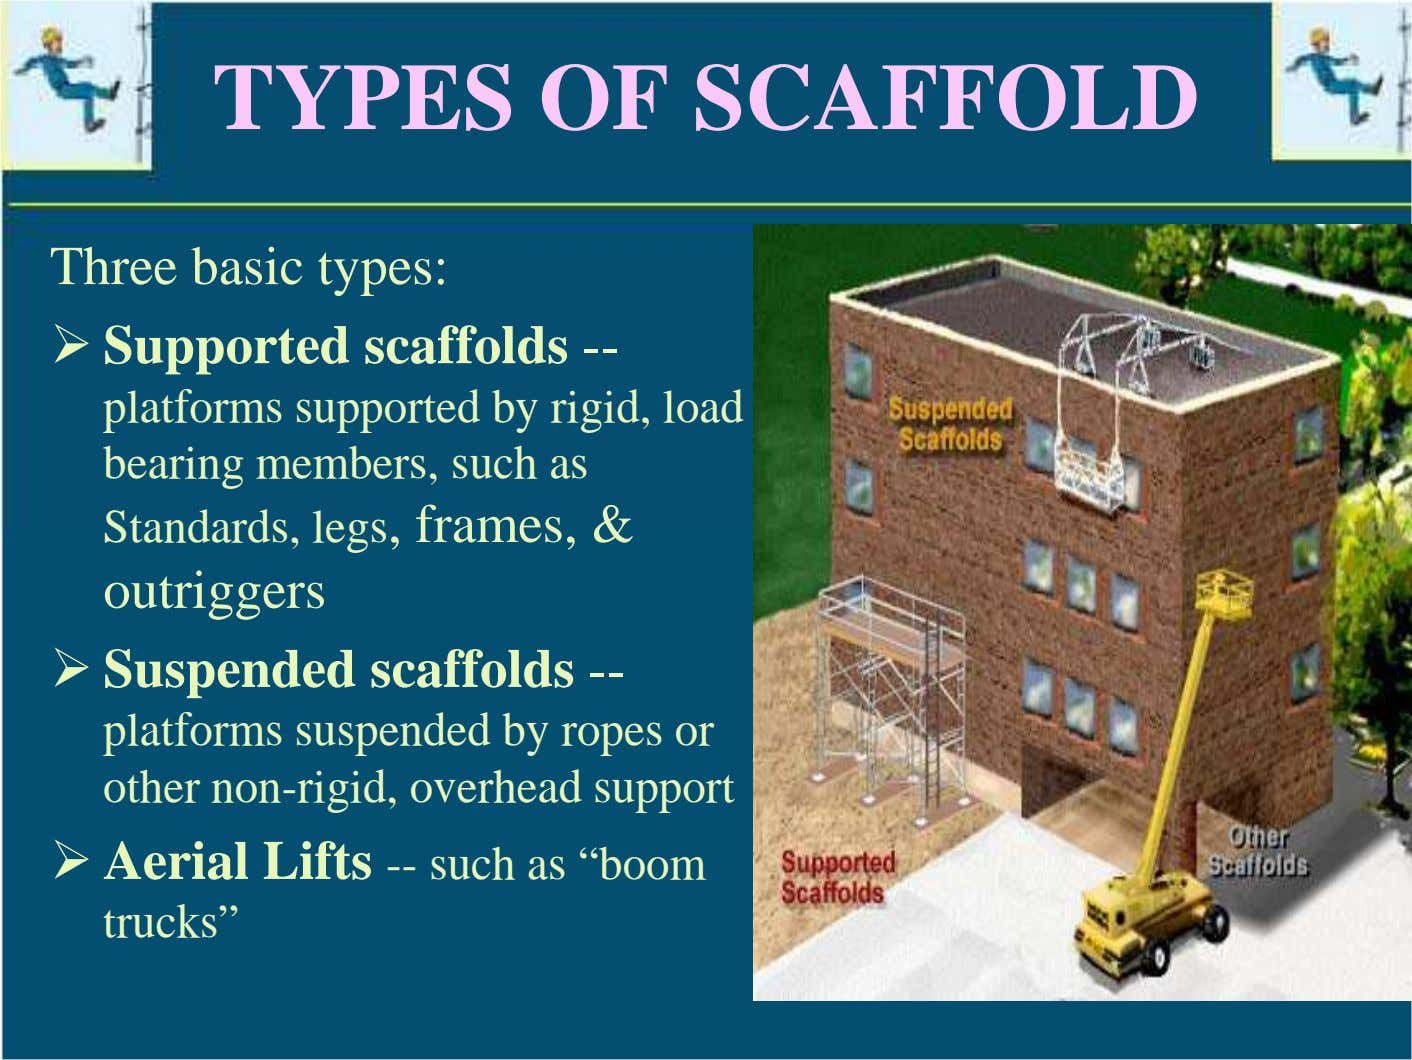 TYPES OF SCAFFOLD Three basic types: Supported scaffolds -- platforms supported by rigid, load bearing